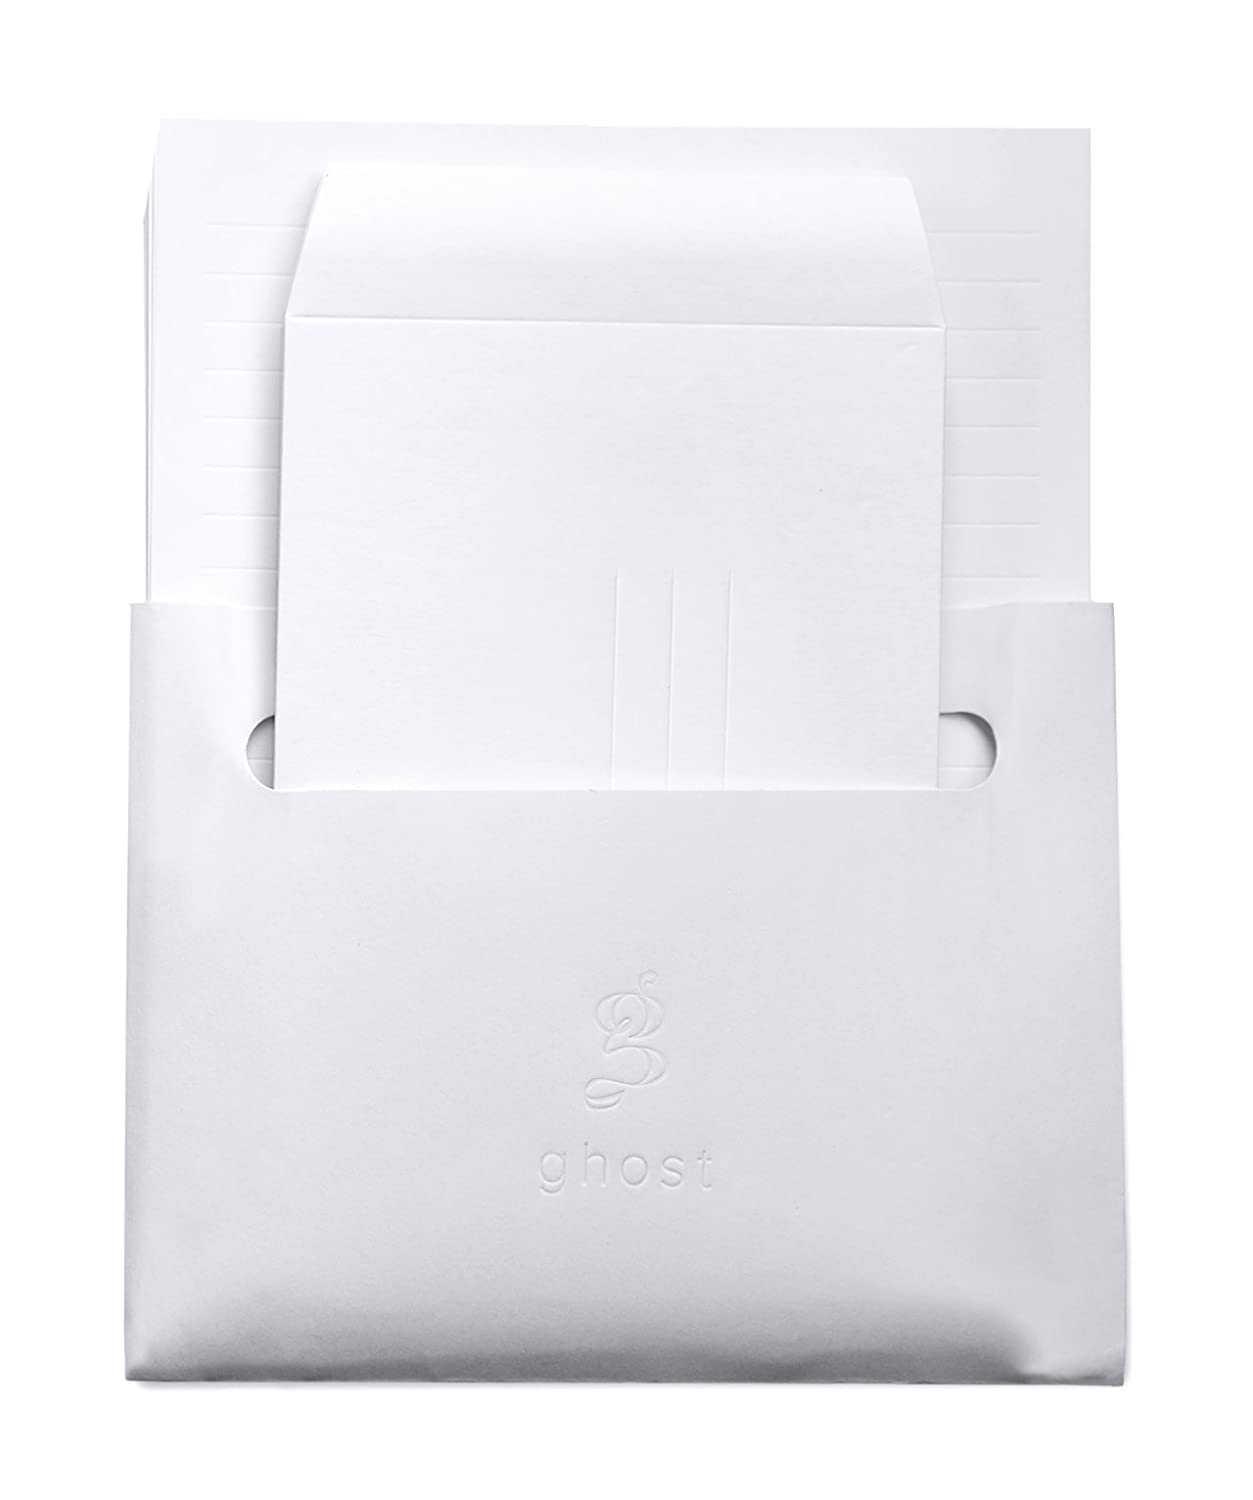 Ghost Paper Stationery Set Envelopes Ranking TOP15 Embossed Lined Sales results No. 1 -